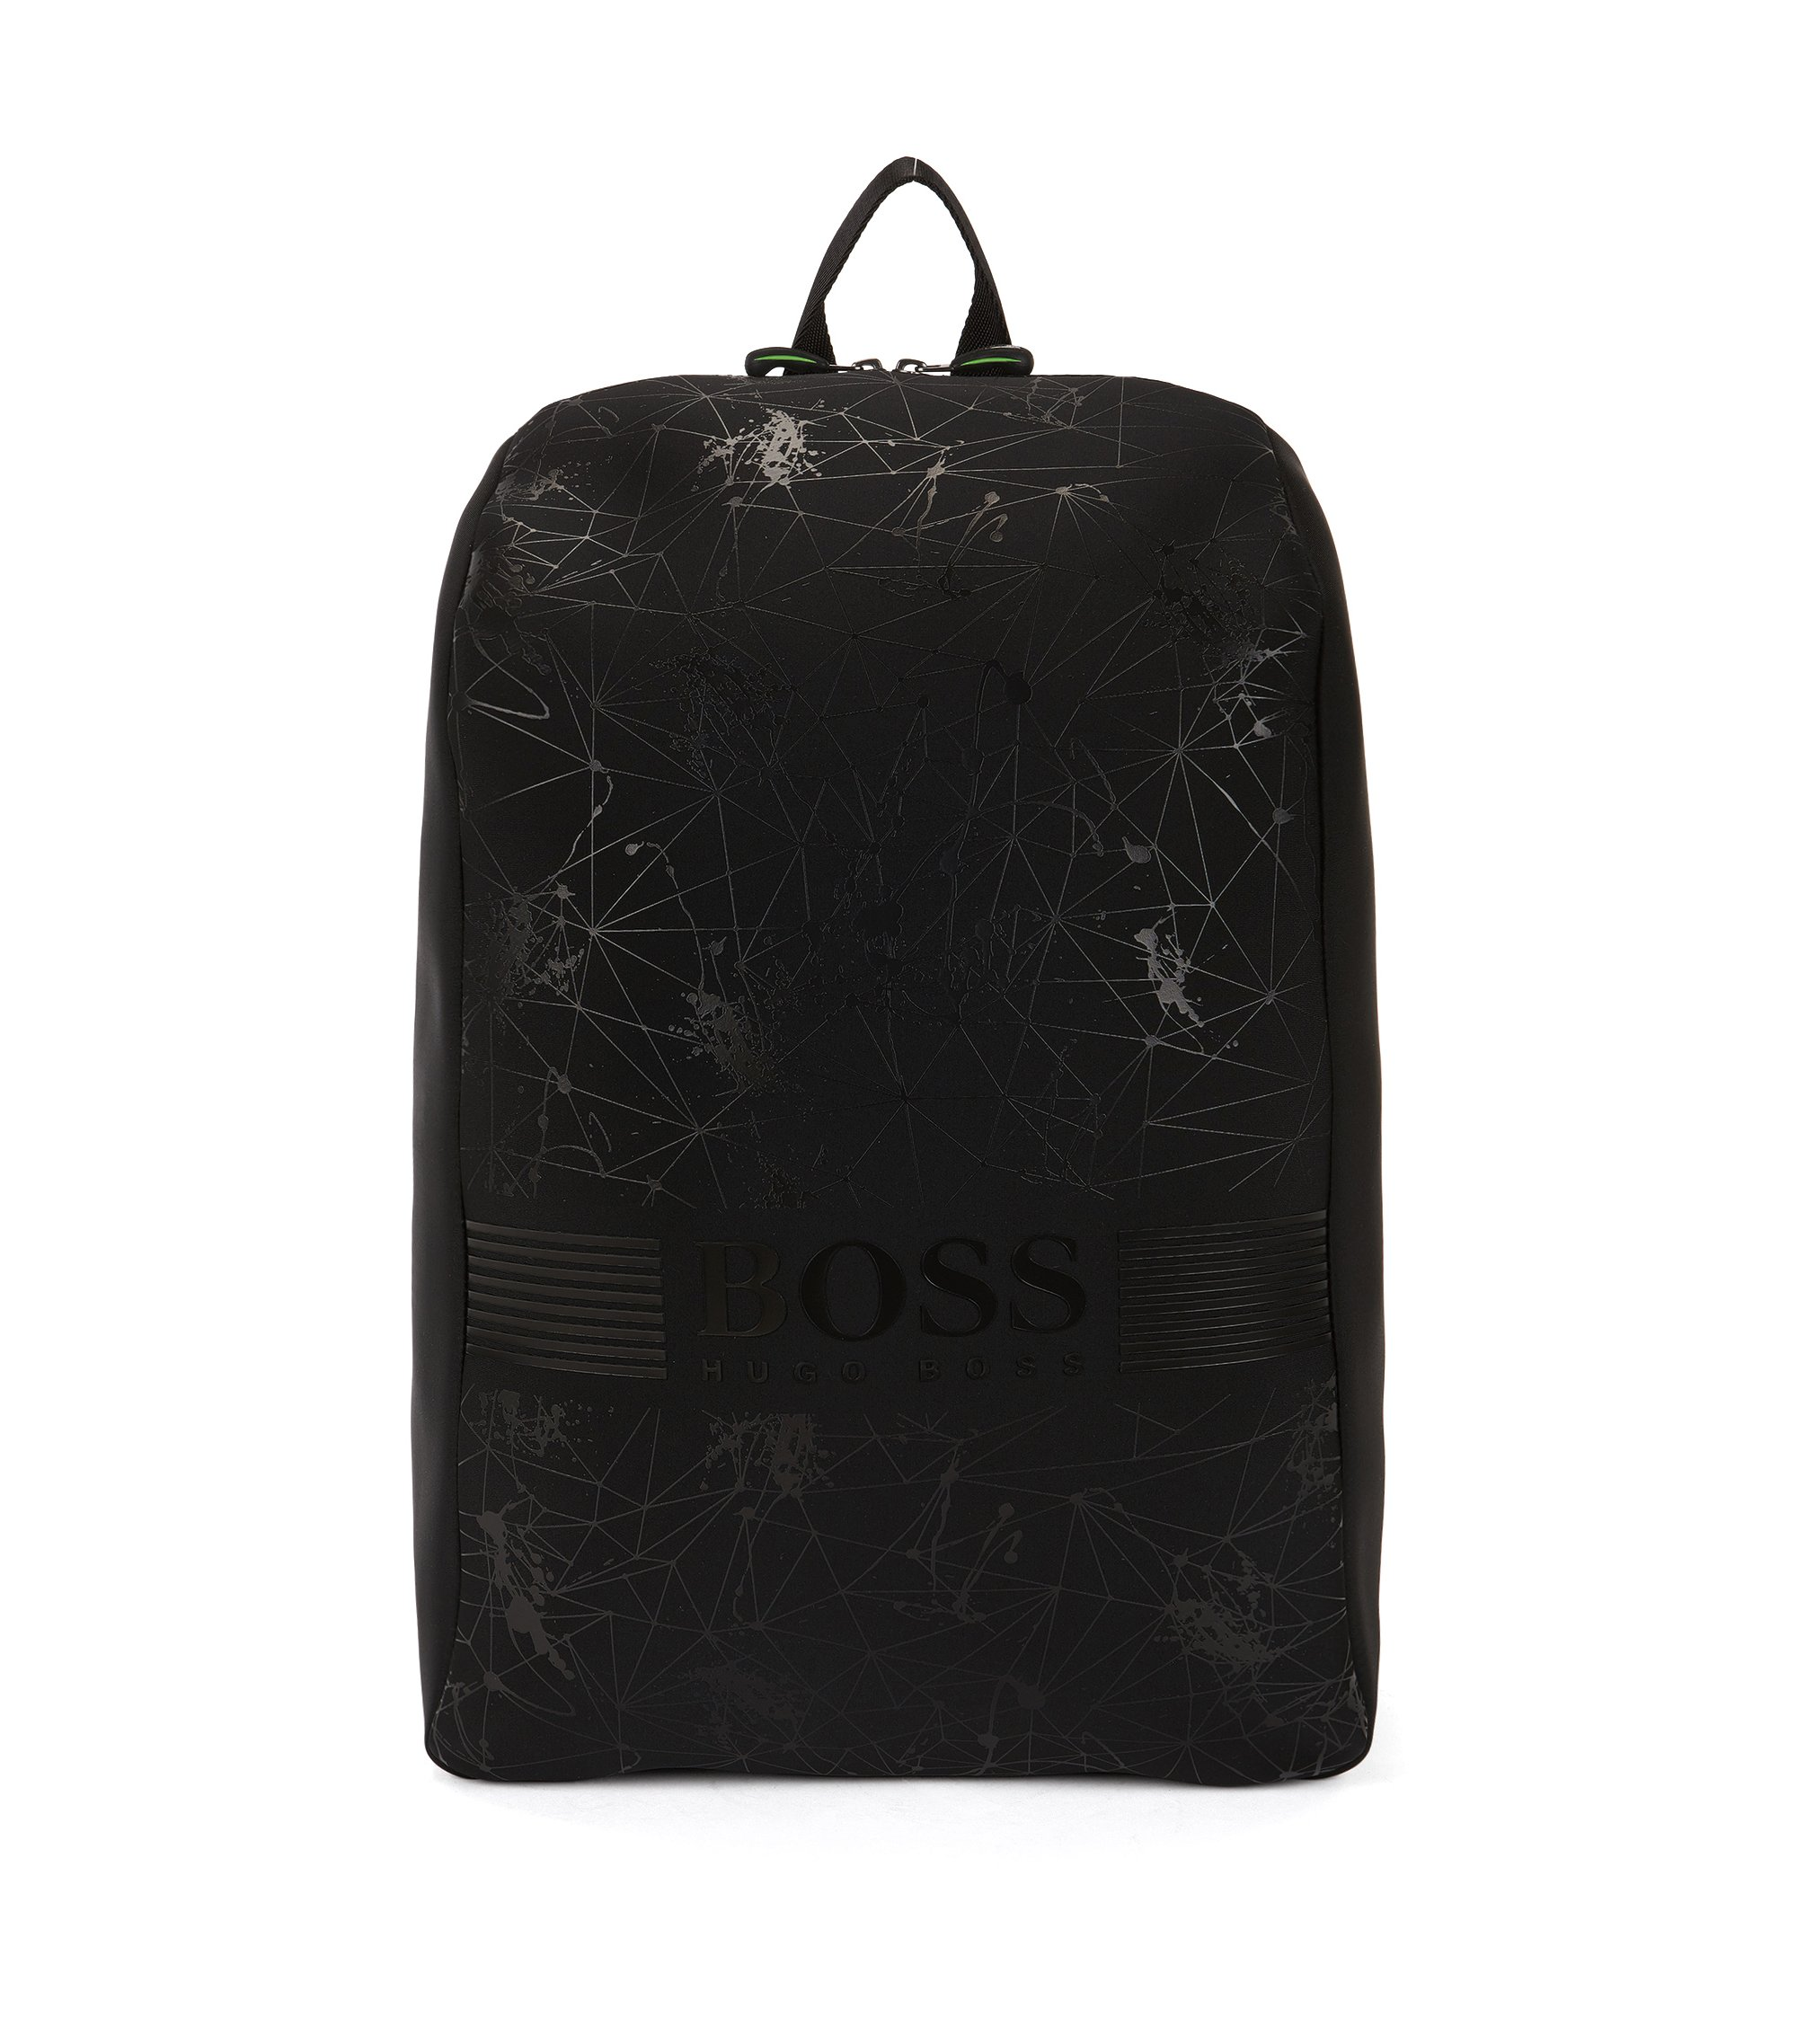 Graphic-print neoprene backpack, Black